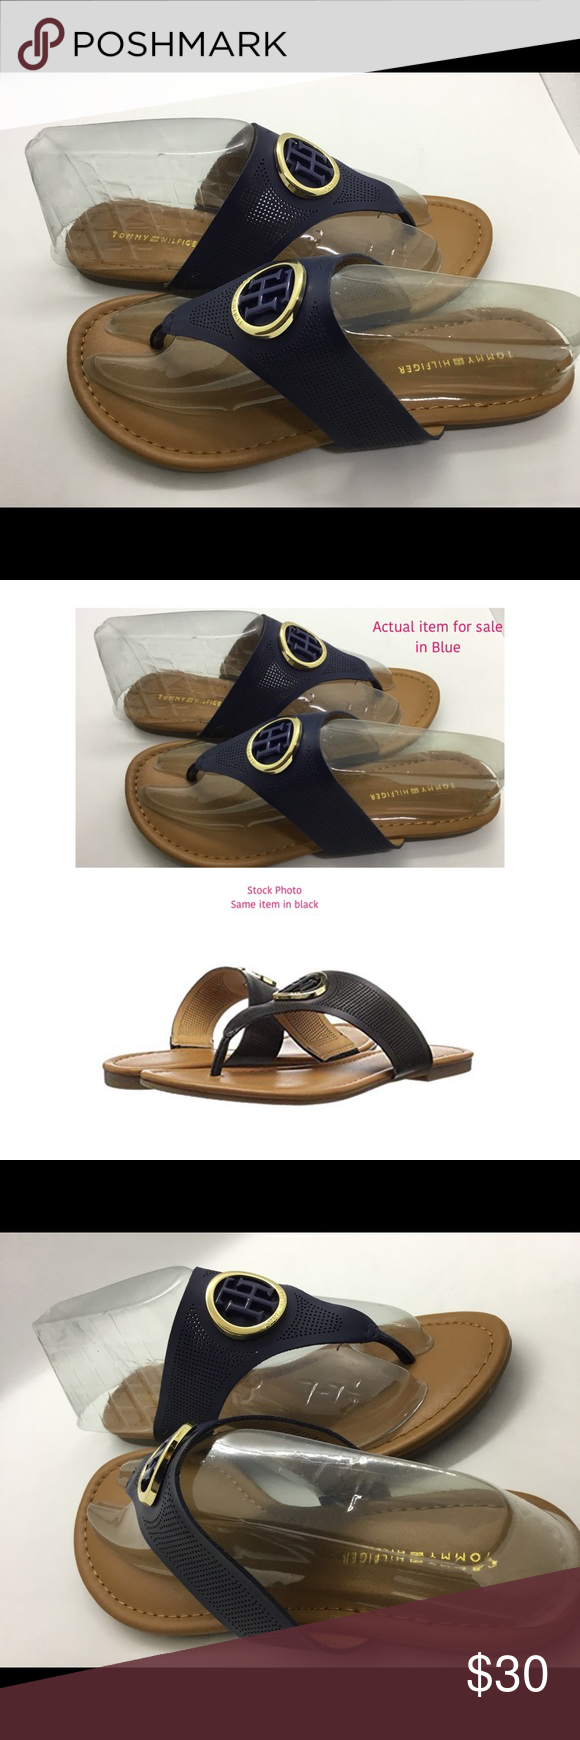 5146cea55fe2 Tommy Hilfiger Sallio Blue Slip Flat sandals NWOB Synthetic Rubber sole  Heel measures approximately 0.5